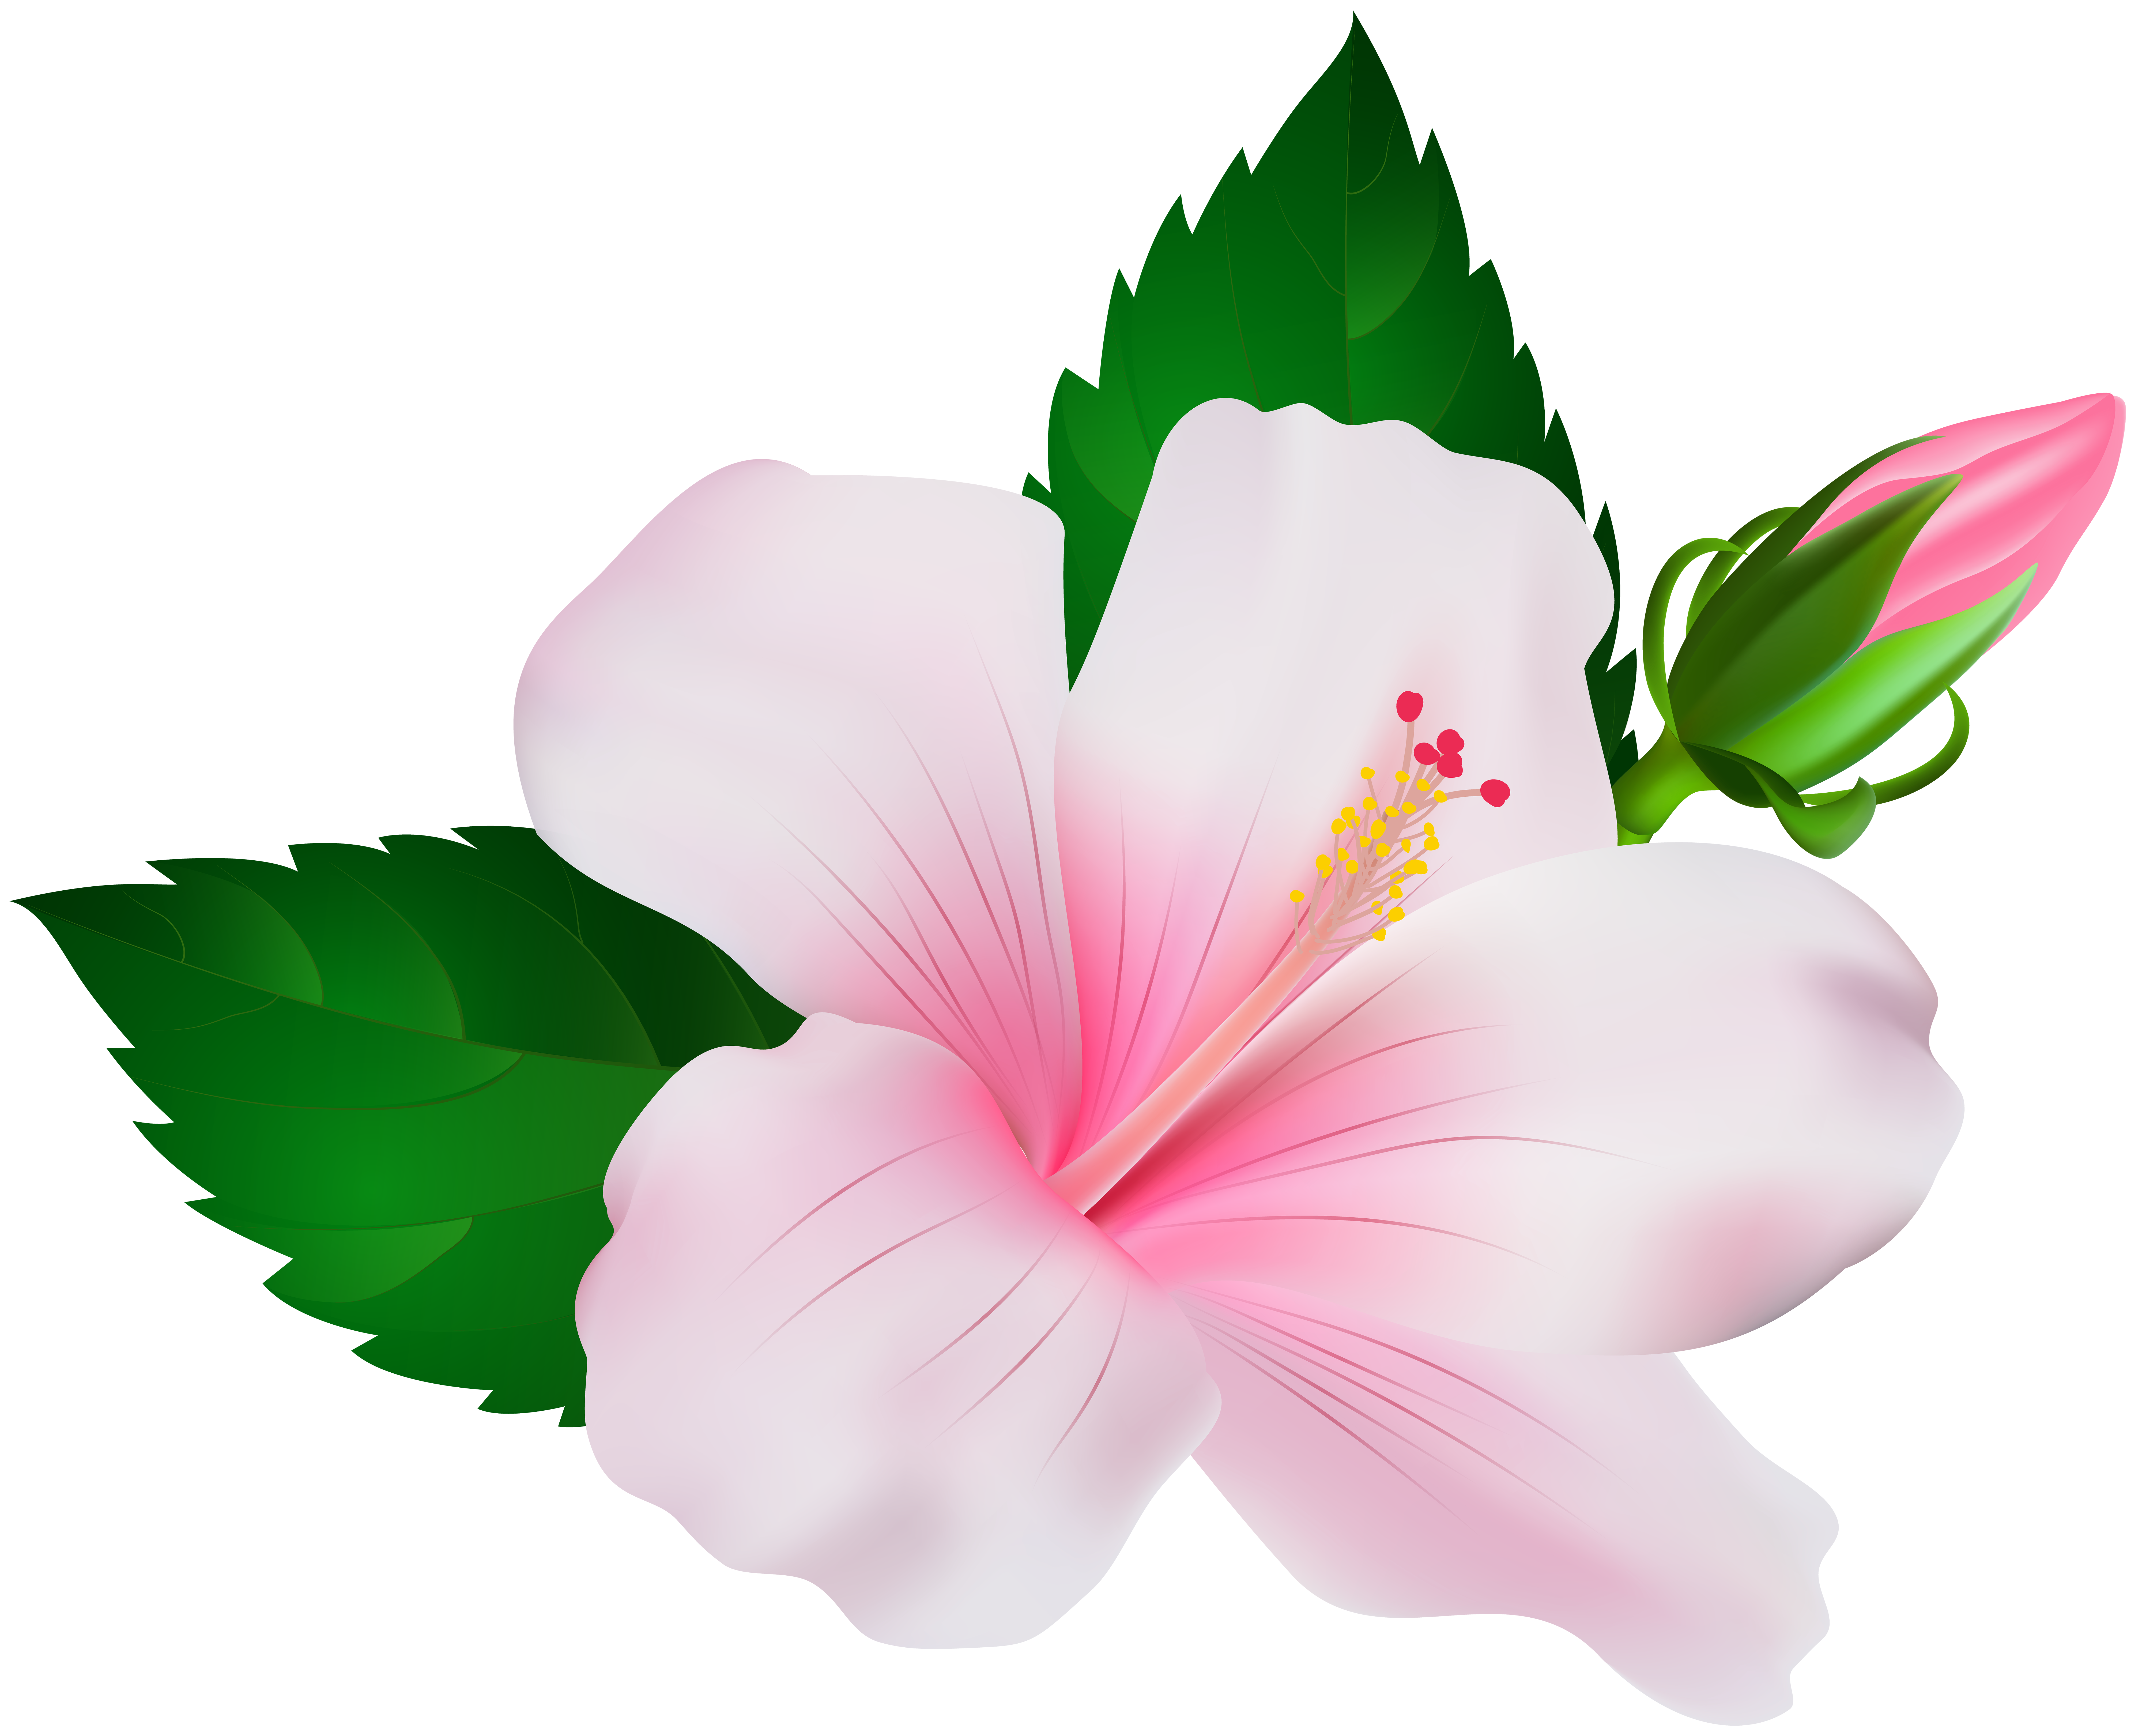 Hibiscus Png Clip Art Image Gallery Yopriceville High Quality Images And Transparent Png Free Clipart Flower Drawing Flower Clipart Flower Art